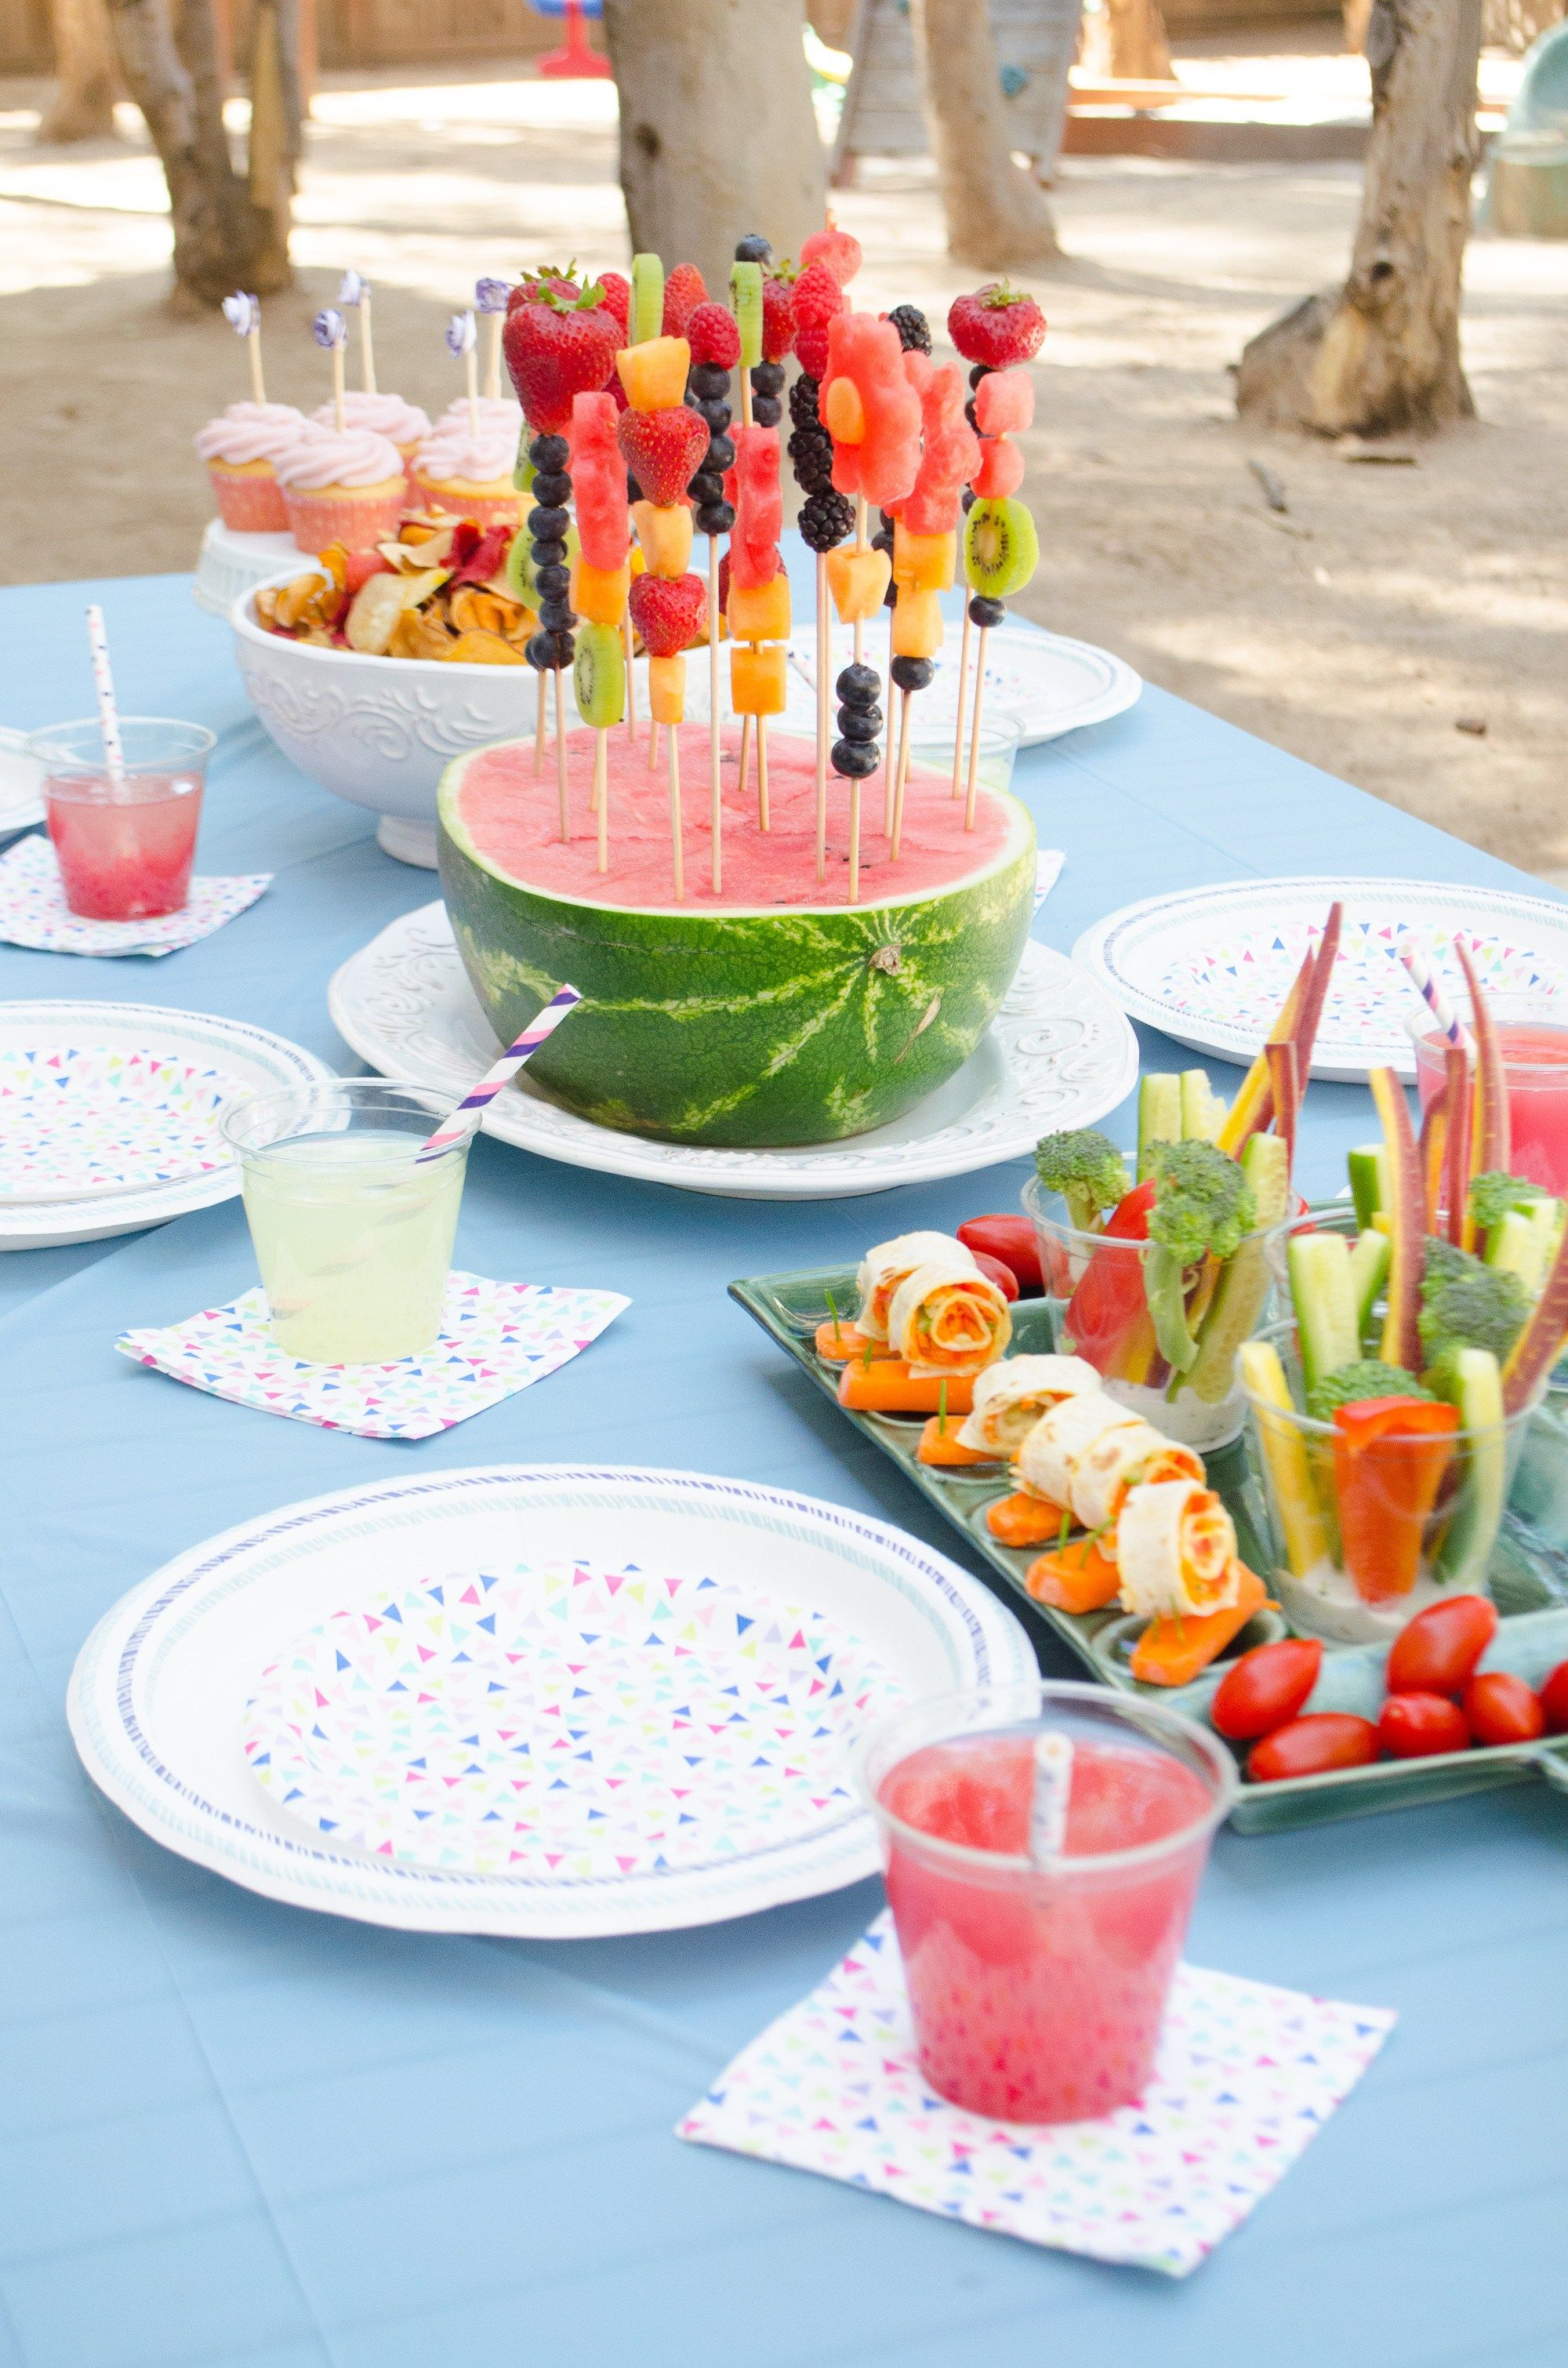 Garden Party Menu From Chefsarahelizabeth Com With Images Kids